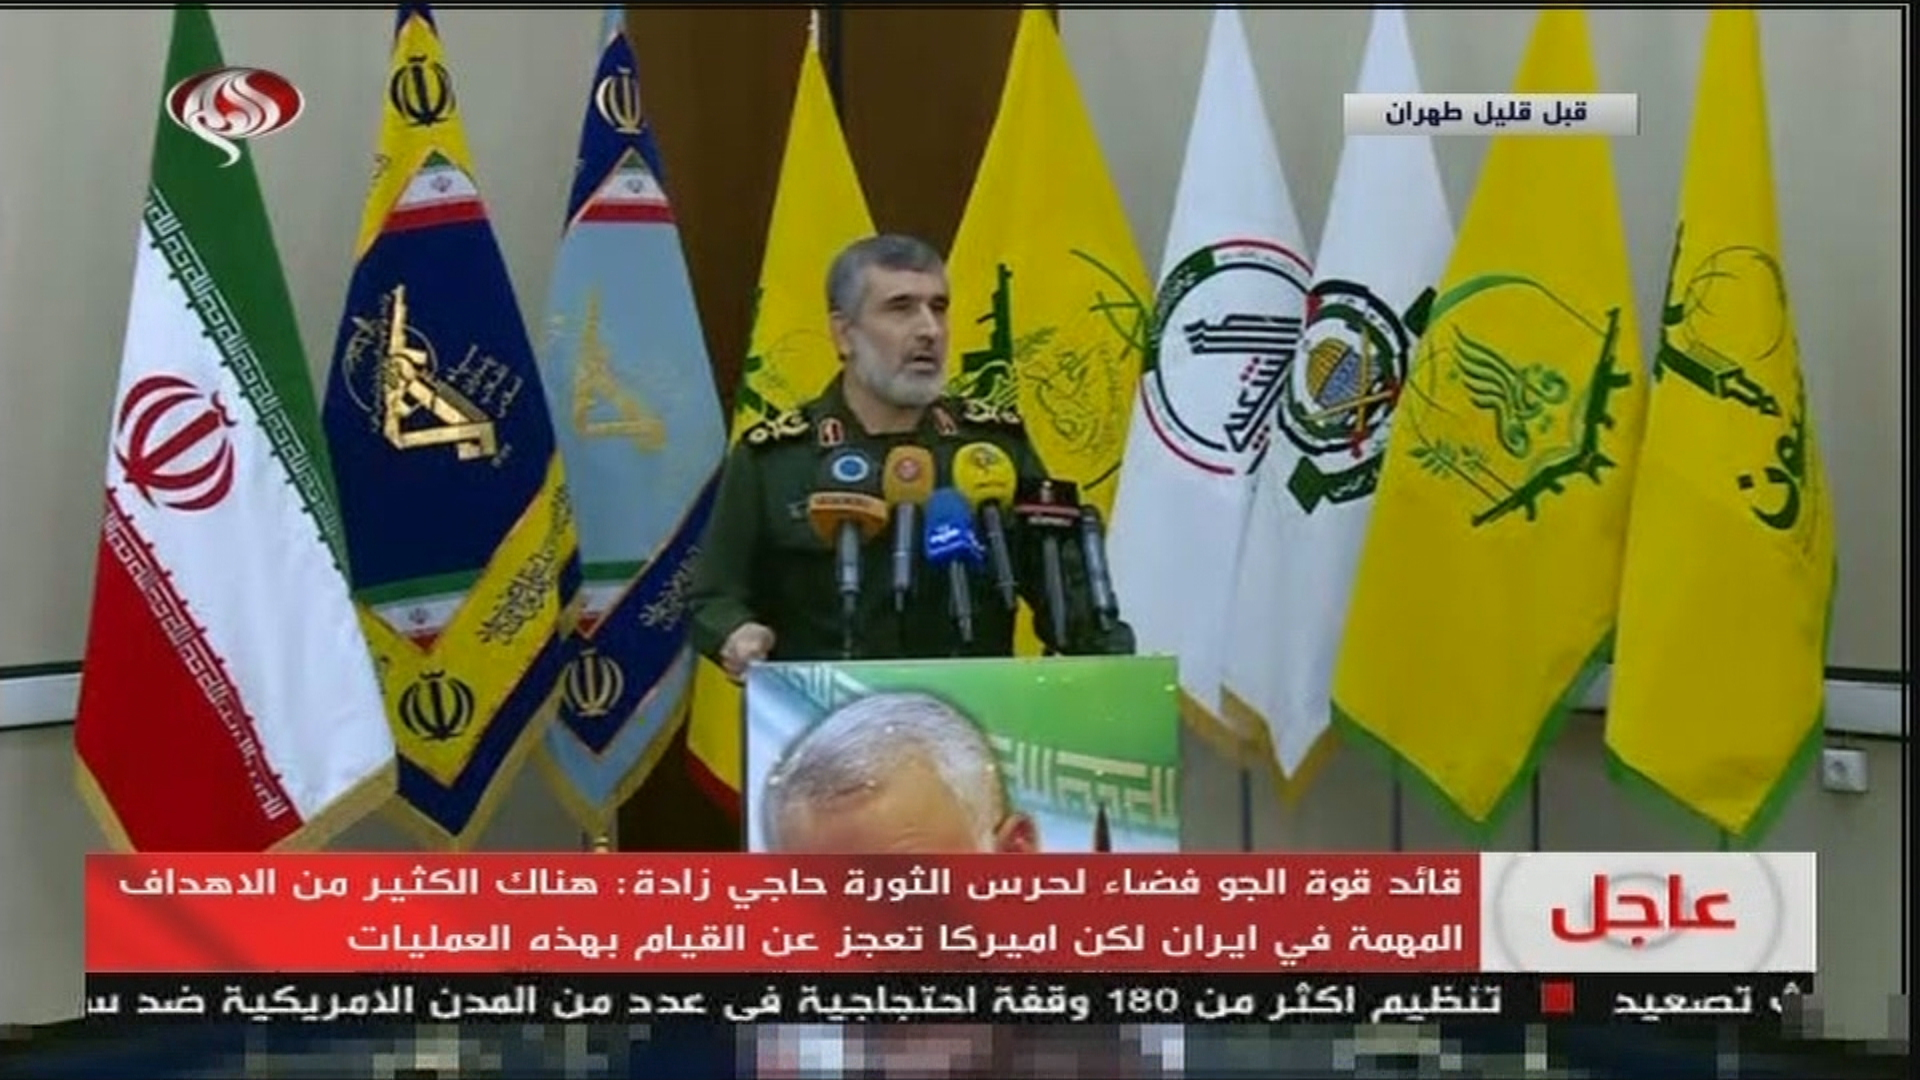 IRGC airforce commander Amir Ali Hajizadeh appears on state TV in front of proxy flags including the PMU militia flag, January 9. (Screengrab from Twitter)